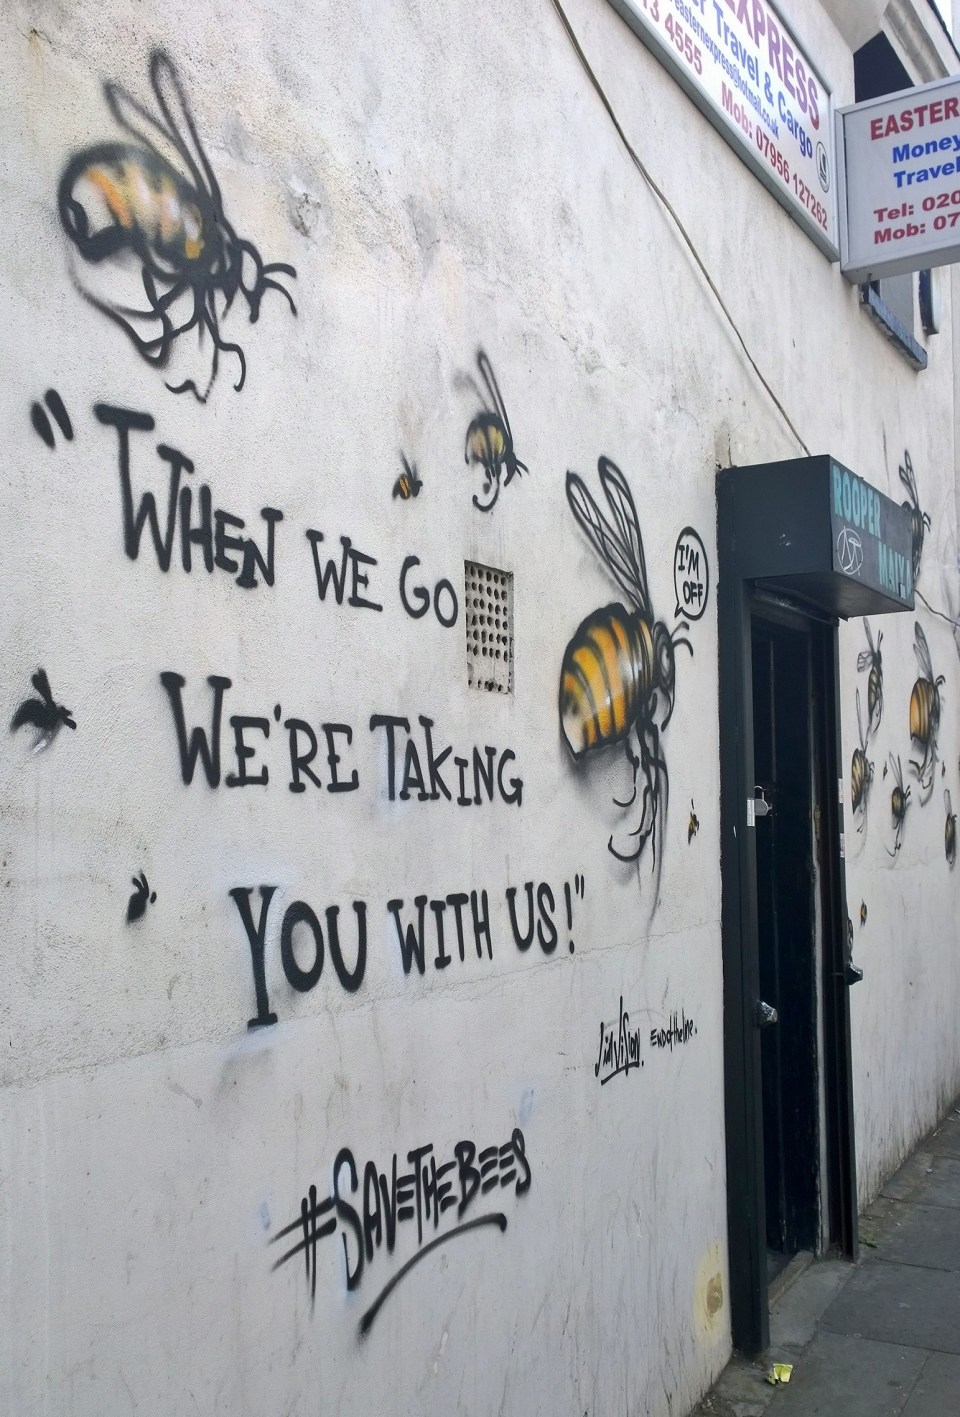 When we go we're taking you with us - Vallance Road